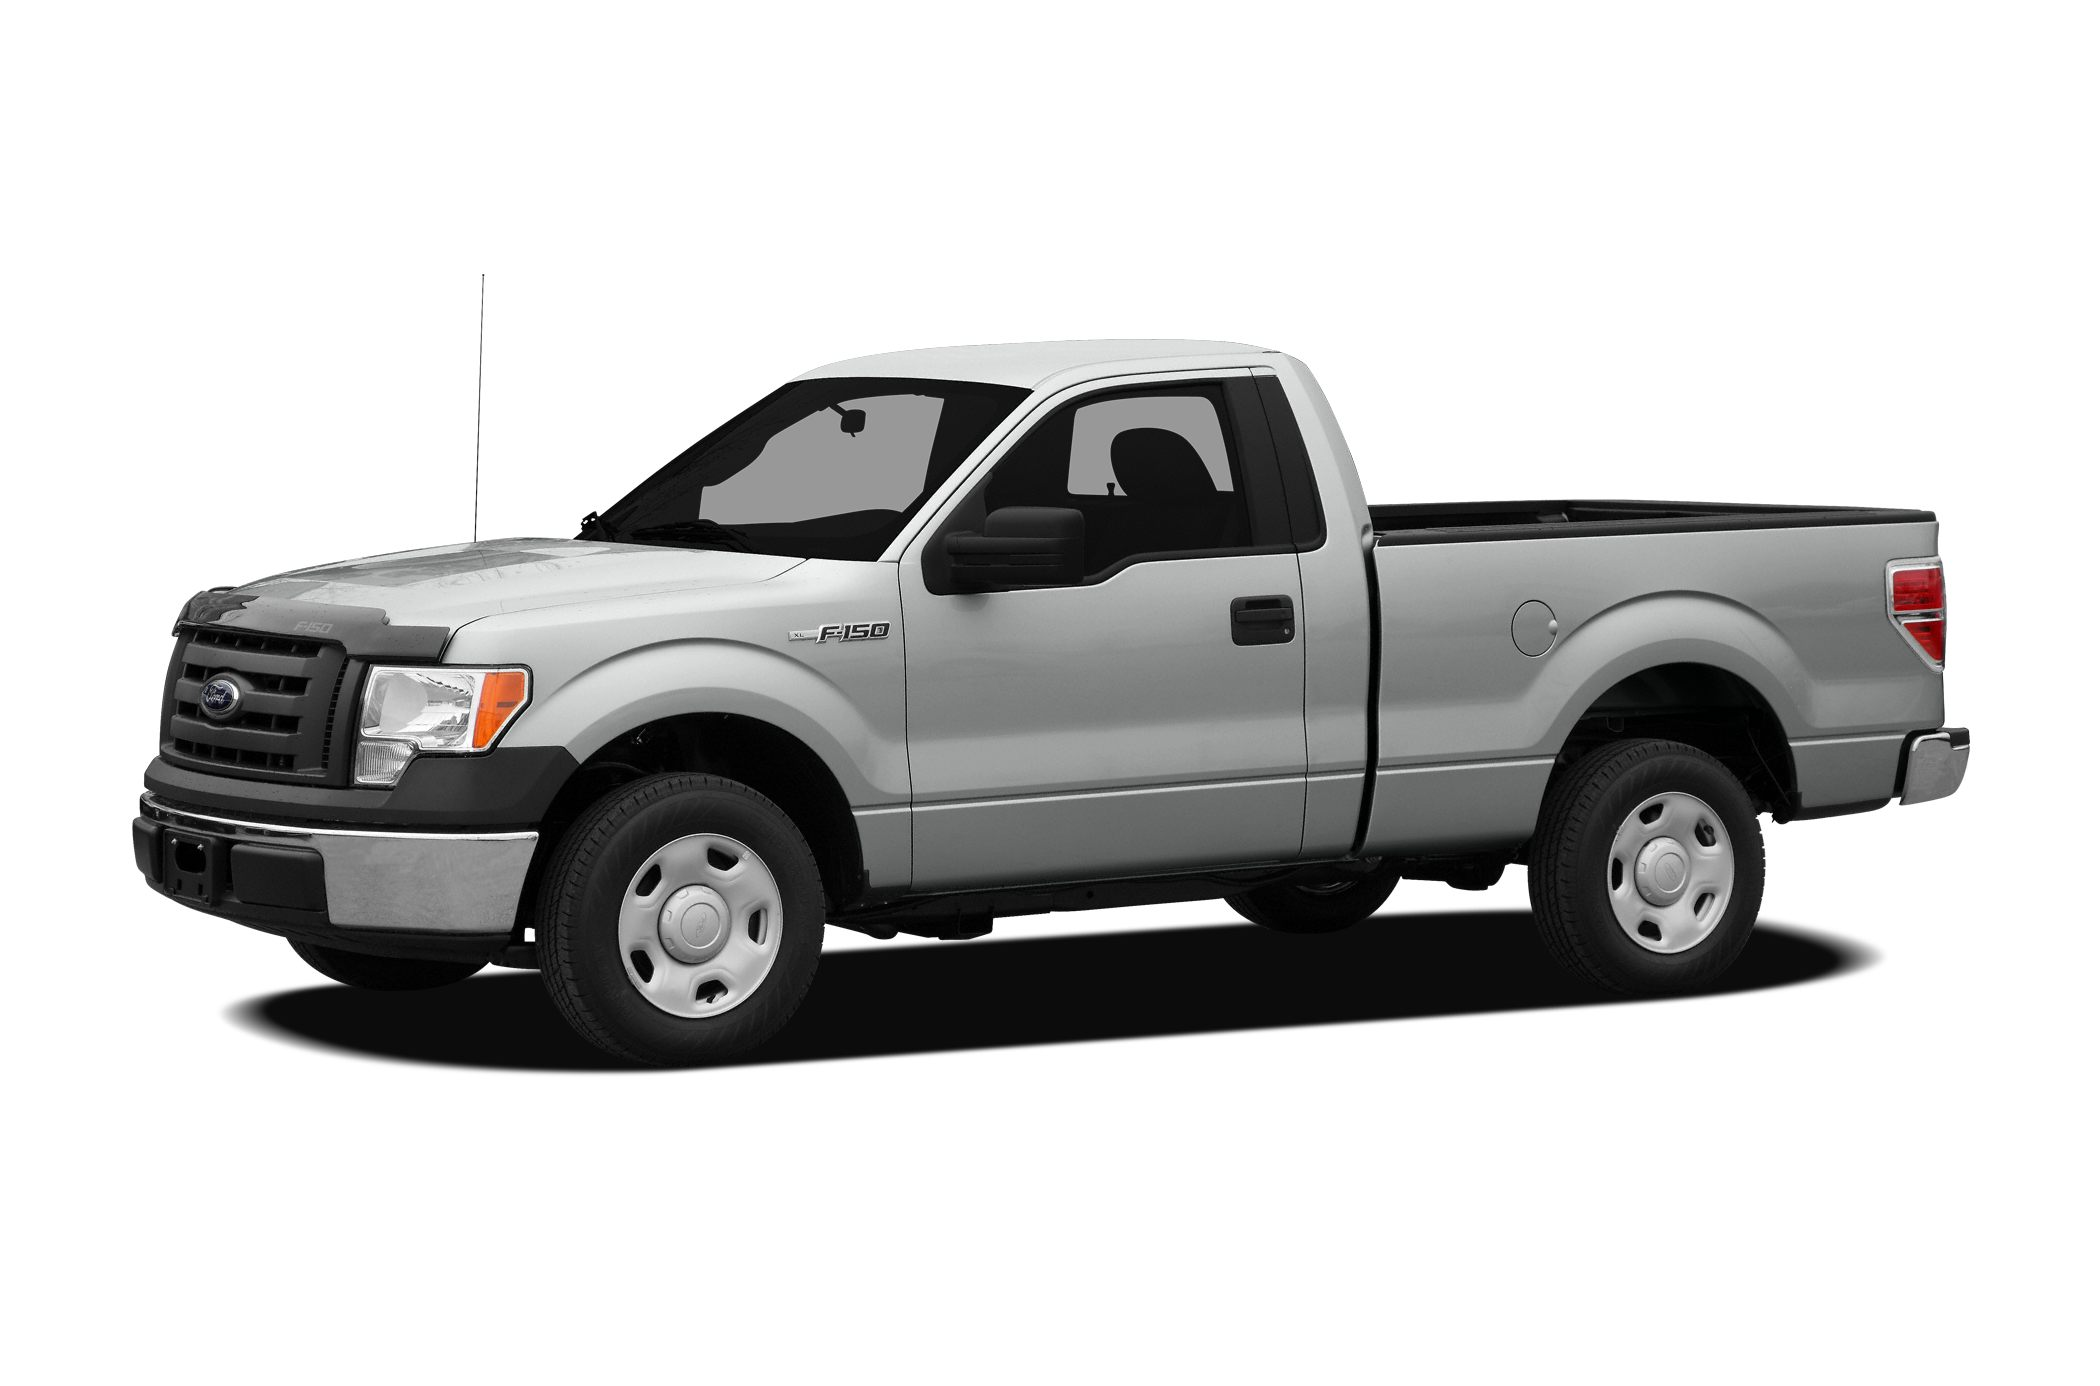 2009 Ford F150 XLT Crew Cab Pickup for sale in Livonia for $20,999 with 67,566 miles